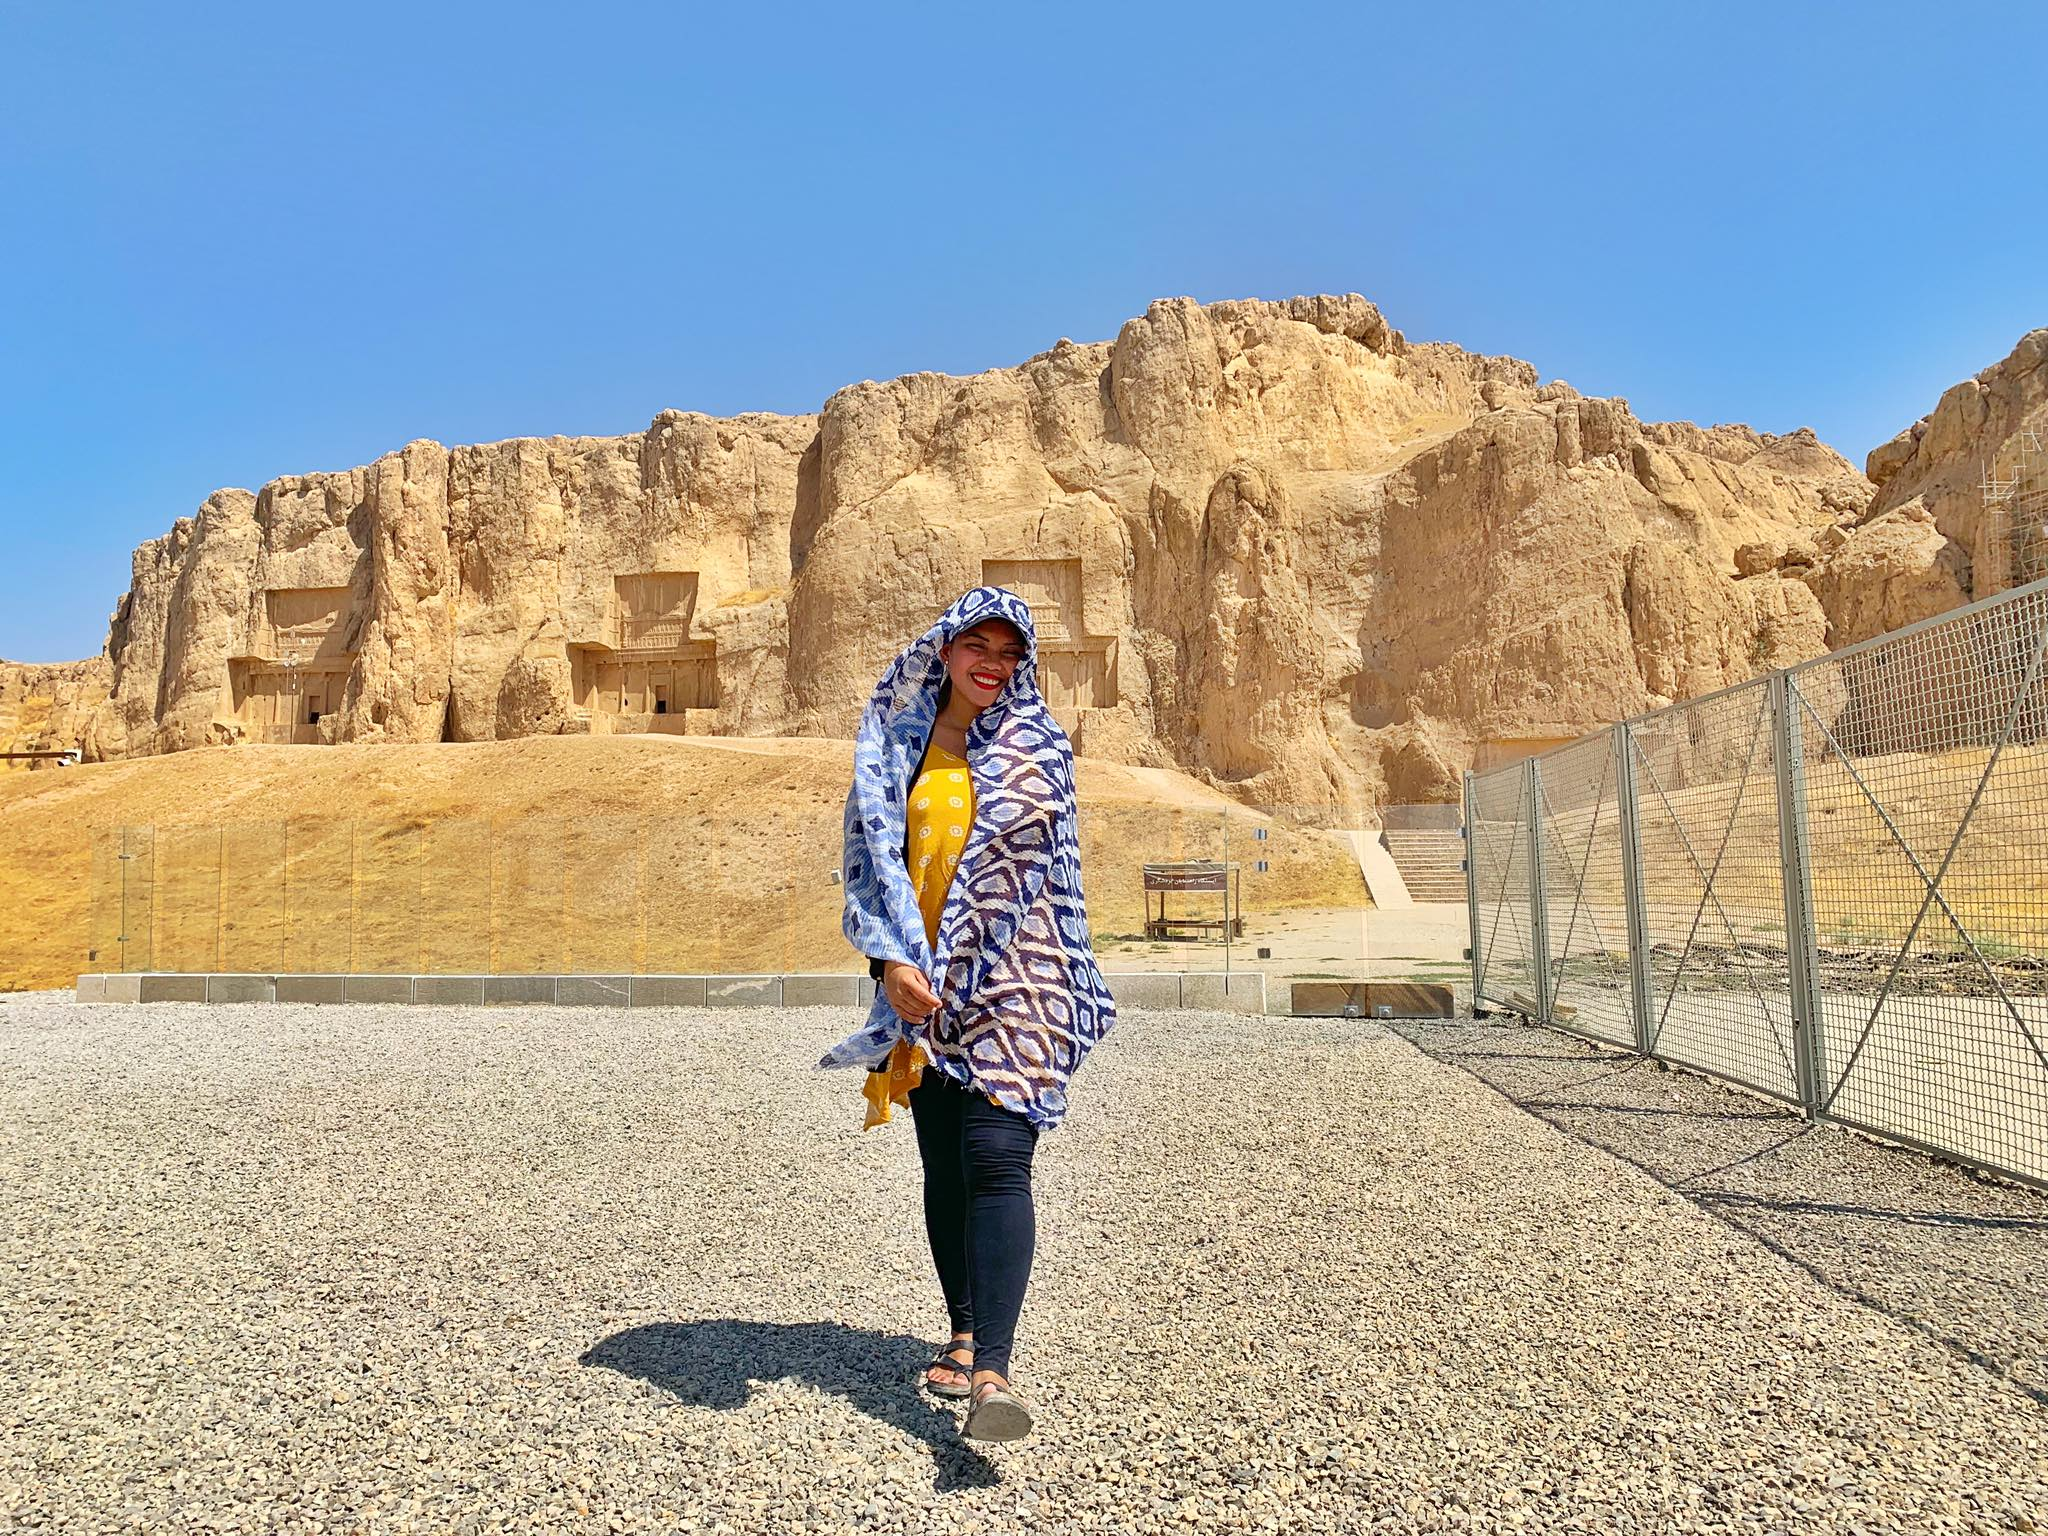 Kach Solo Travels in 2019 UNESCO heritages sites of Persepolis and Pasagardae.jpg